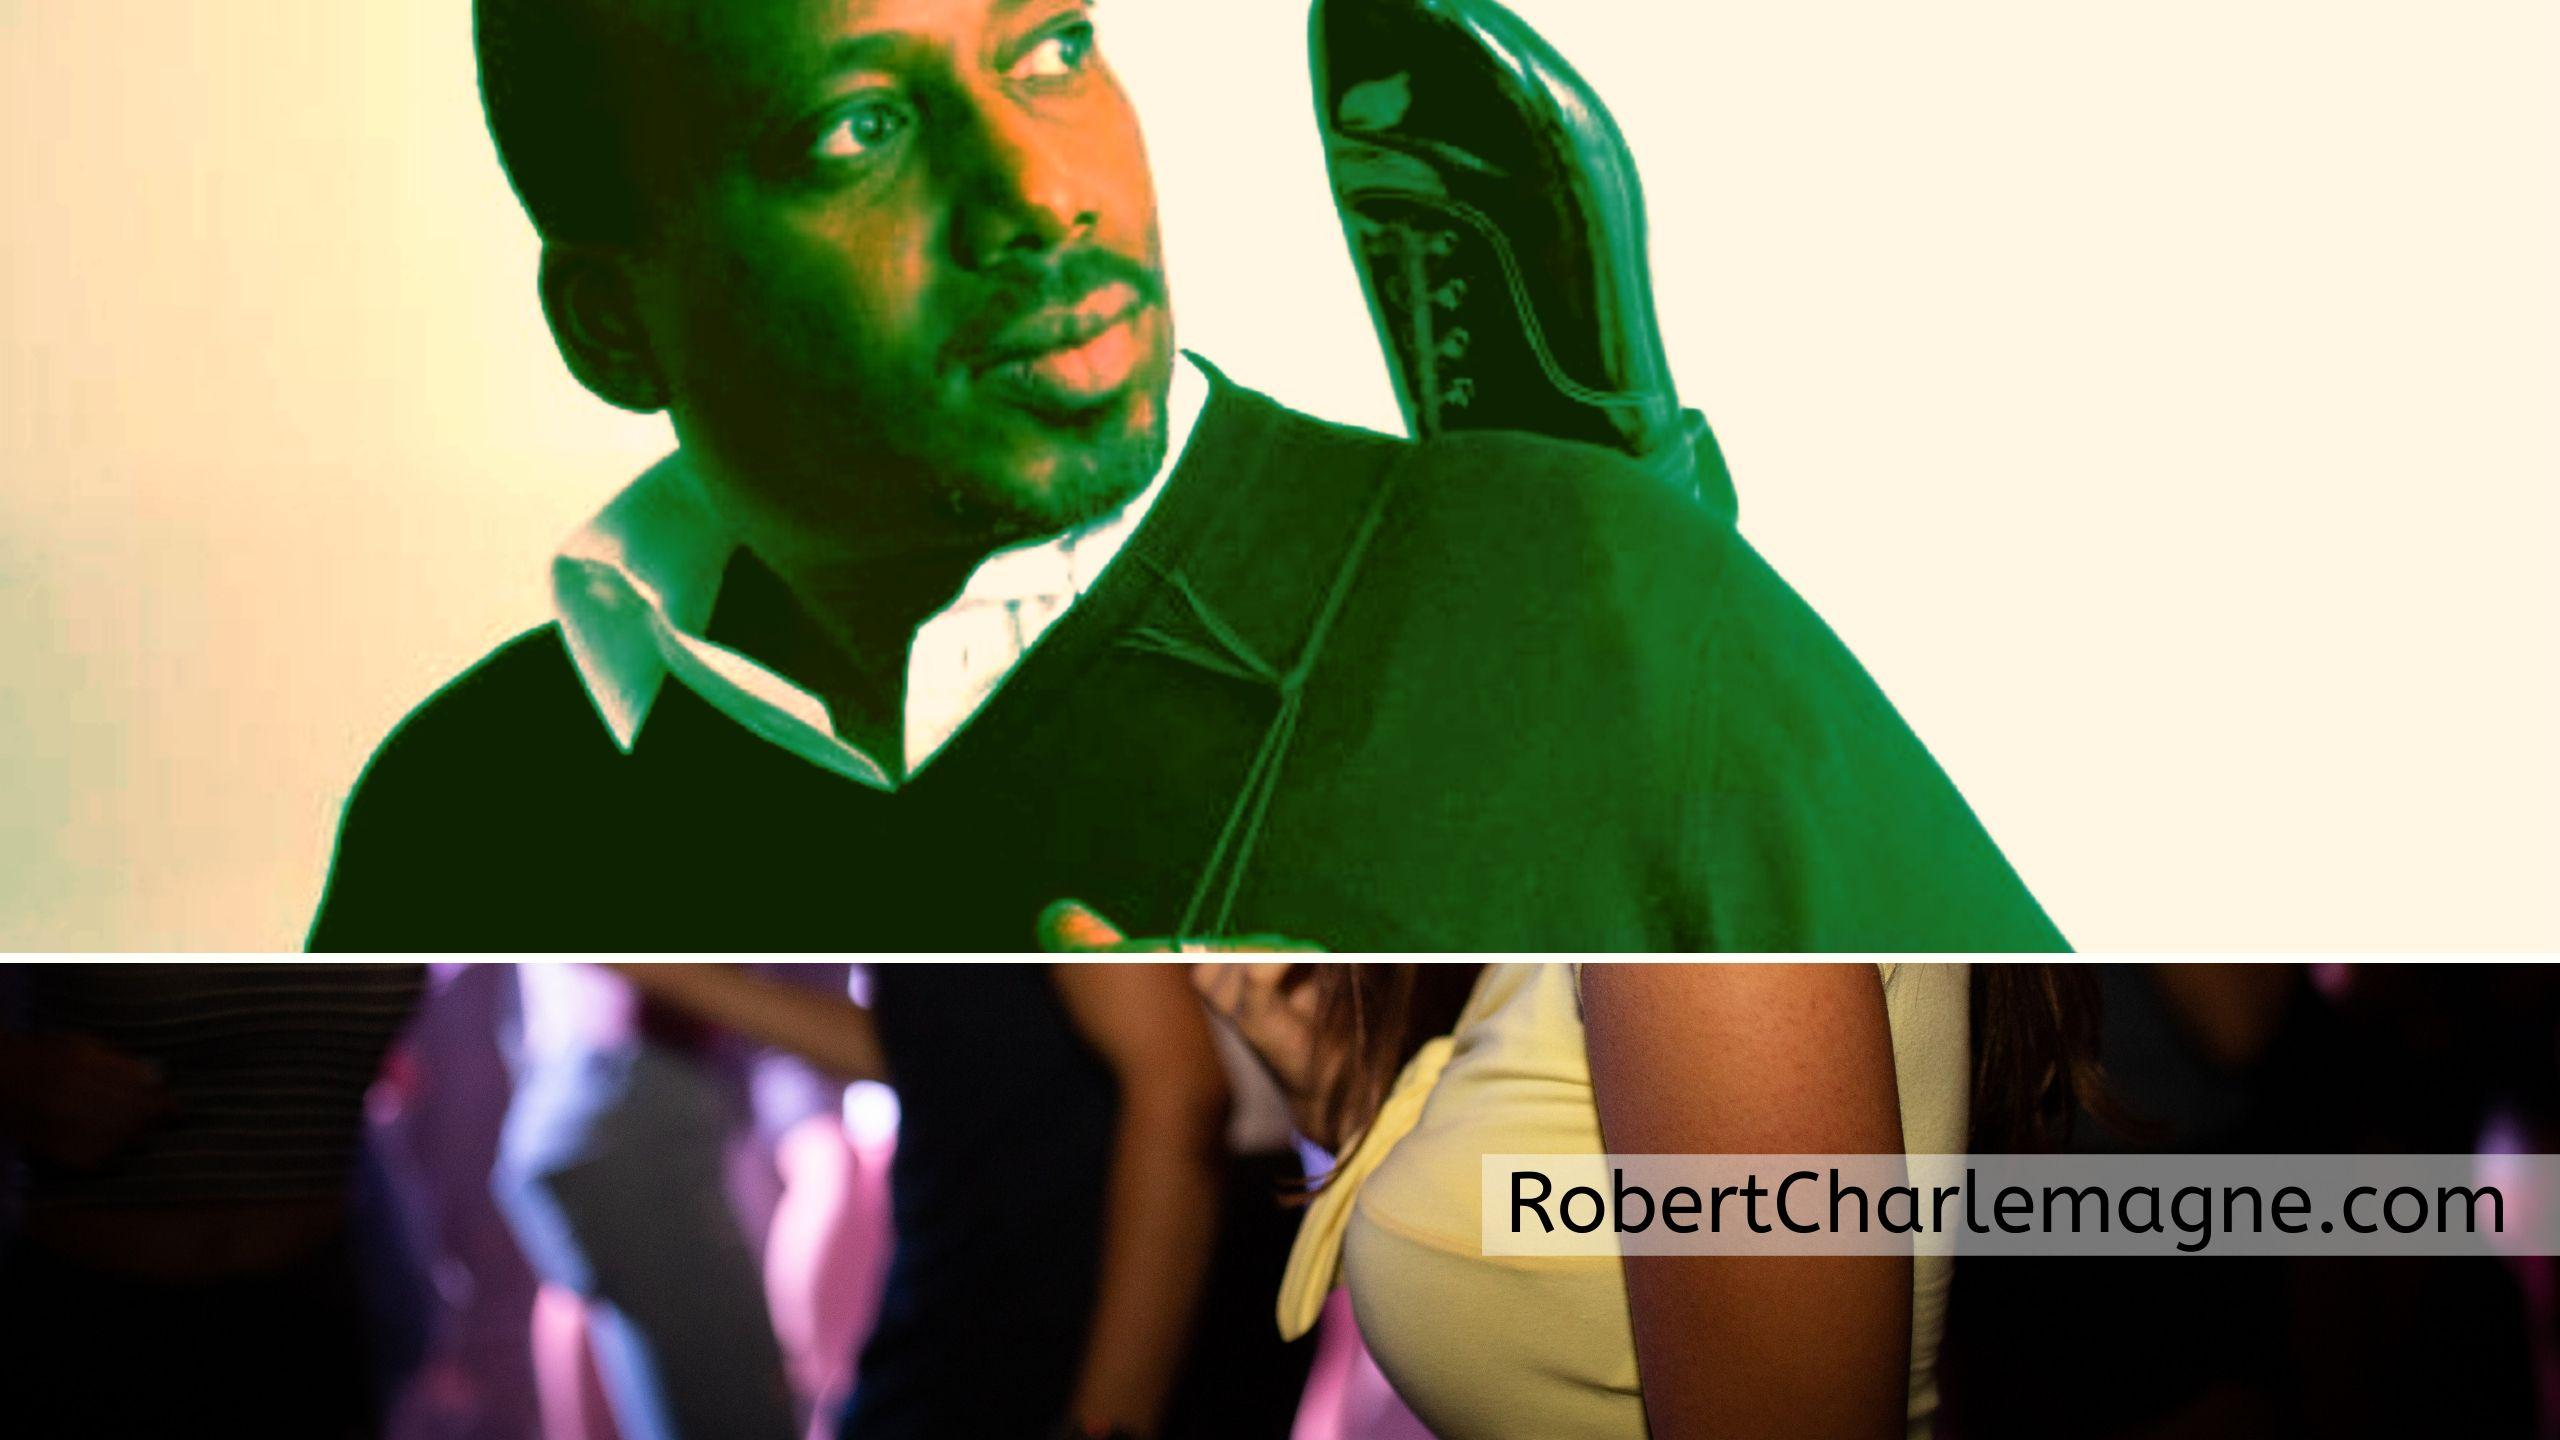 Learn Salsa Robert Charlemagne Teacher RCHosting ertertreter